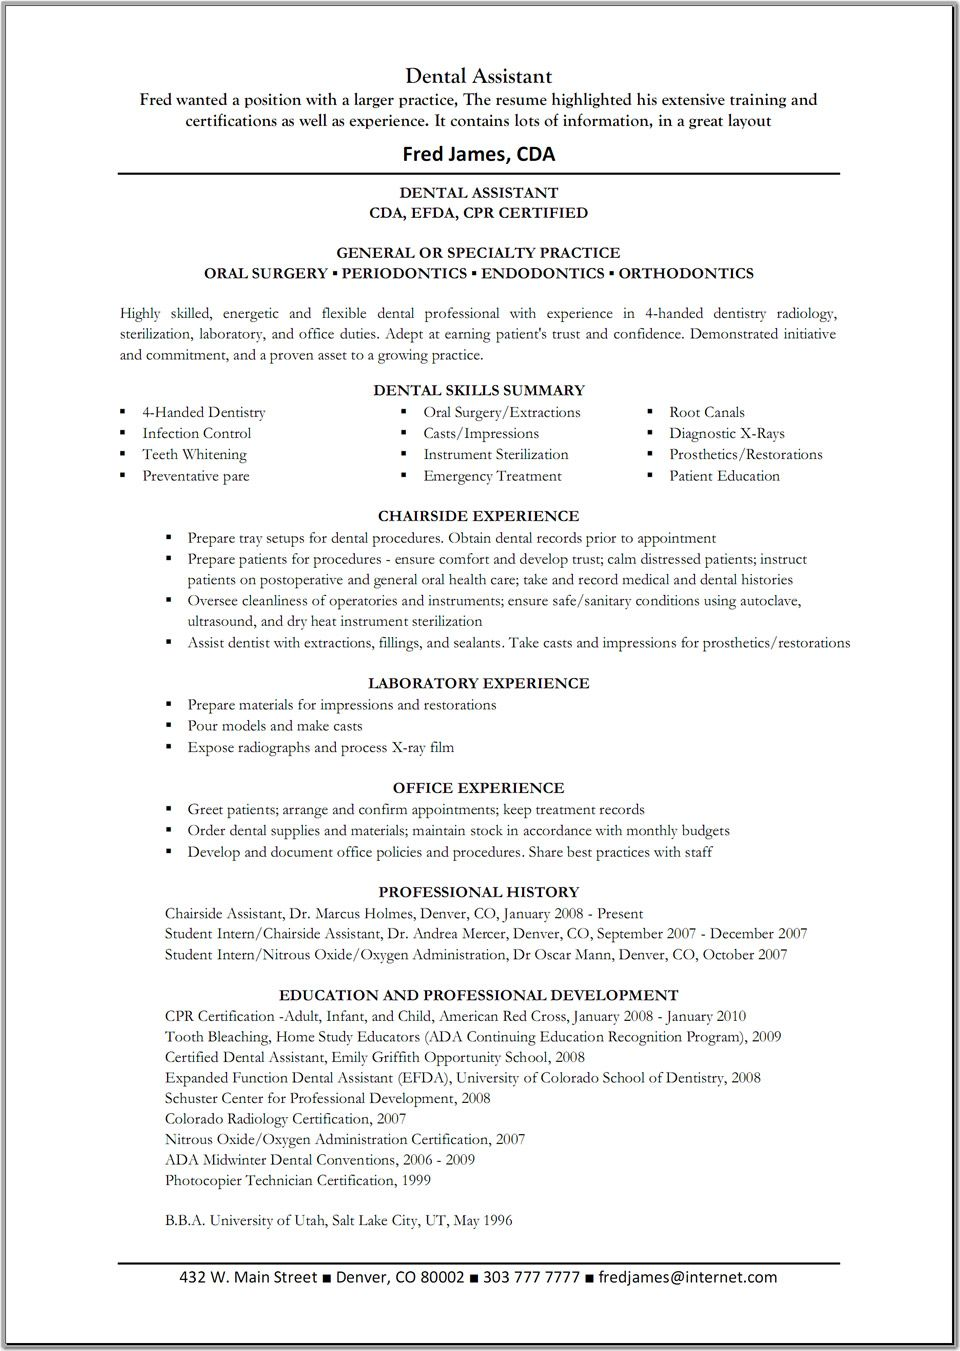 Dental Assistant Resume Template | Great Resume Templates